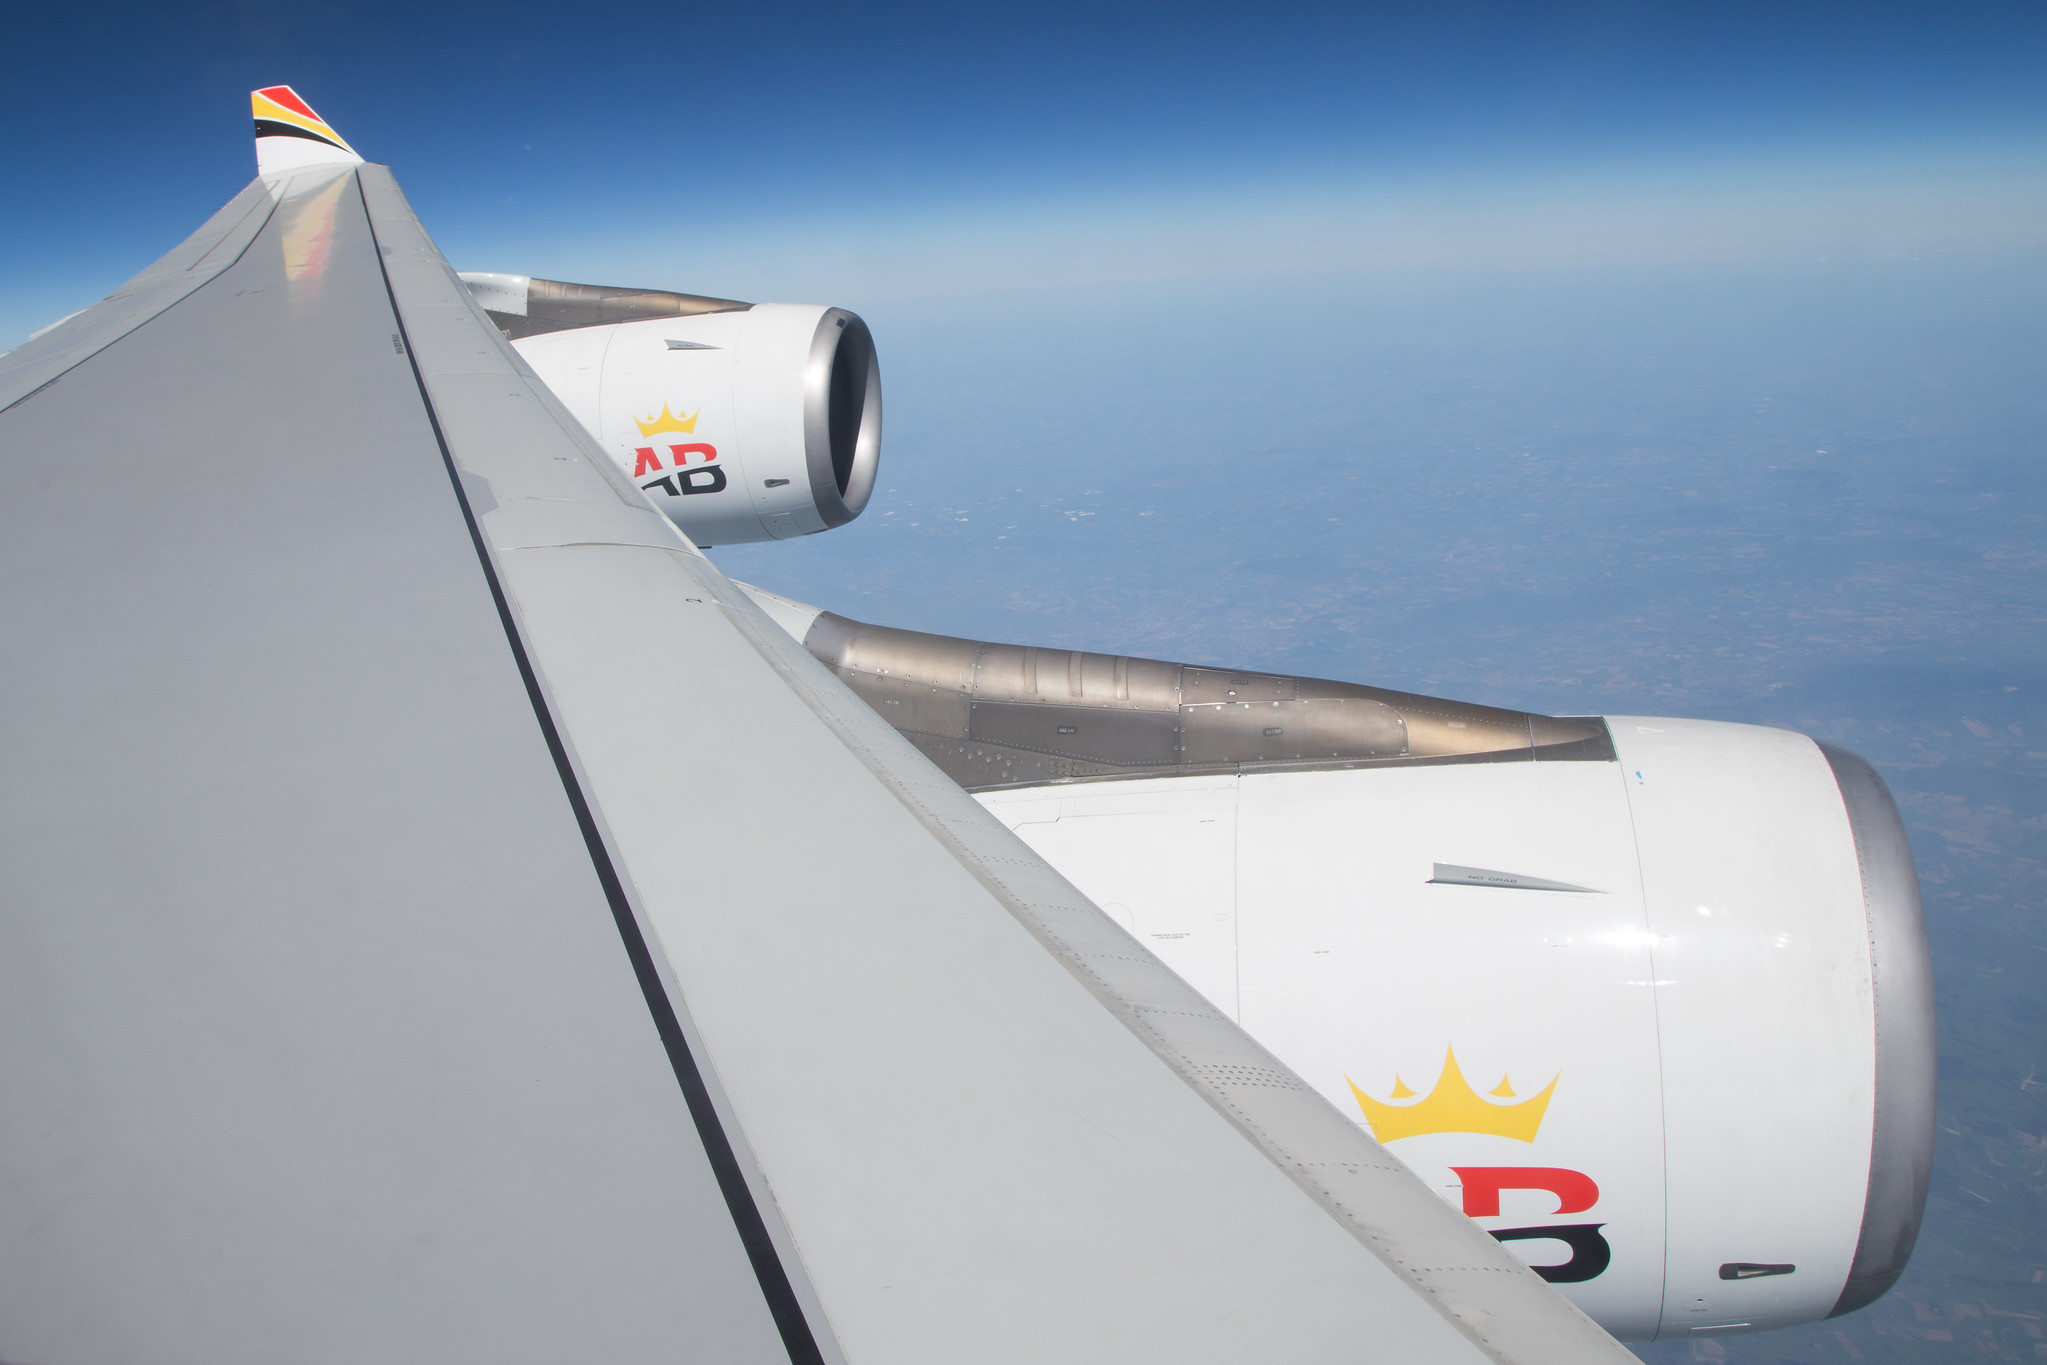 Air Belgium test flight CRL to CRL